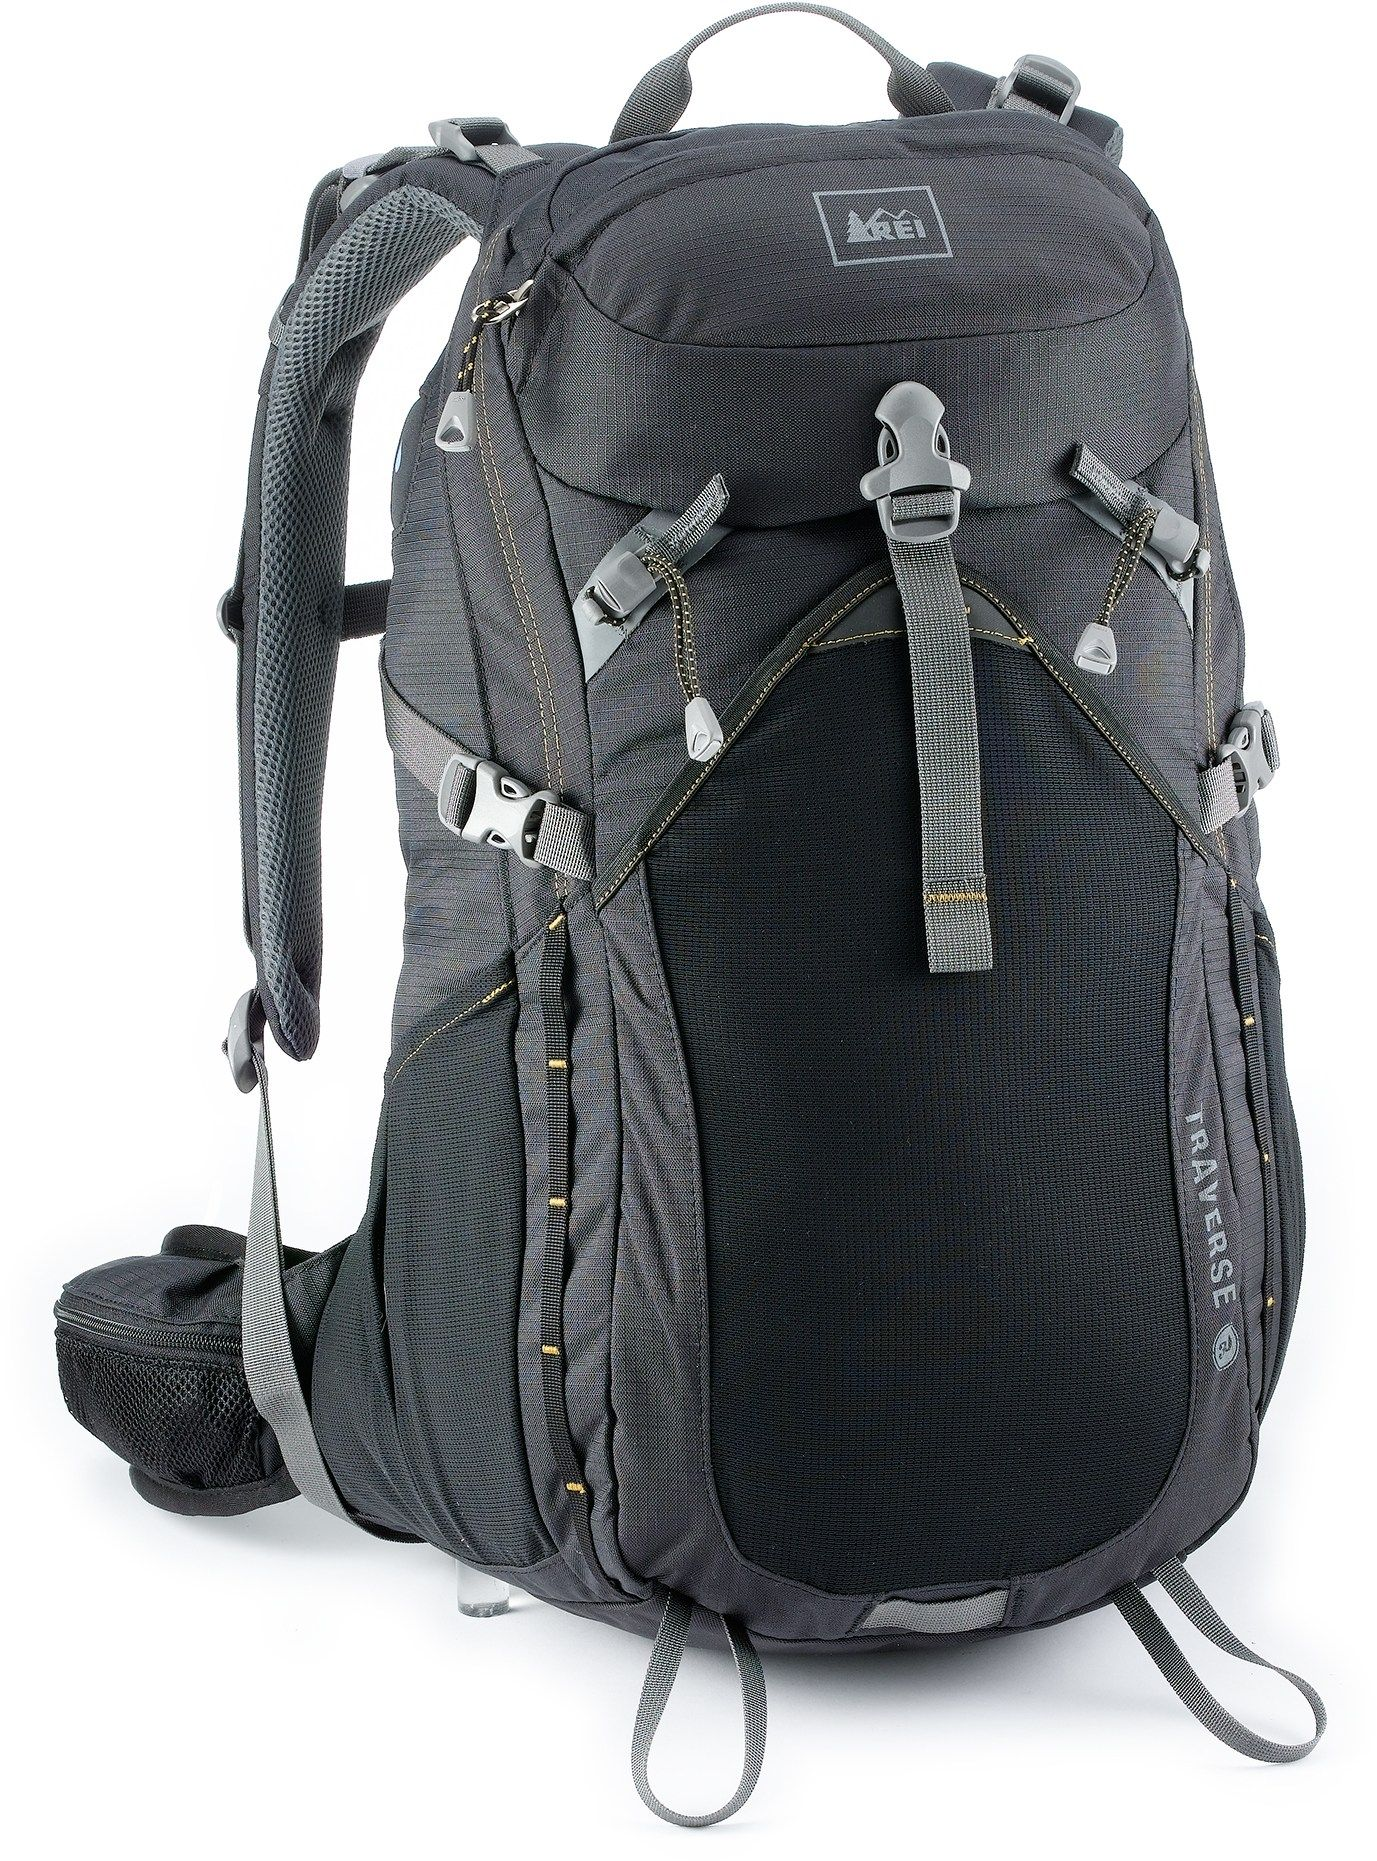 c8cf2da2864f REI Traverse 30 Pack - Special Buy - Free Shipping at REI-OUTLET.com ...